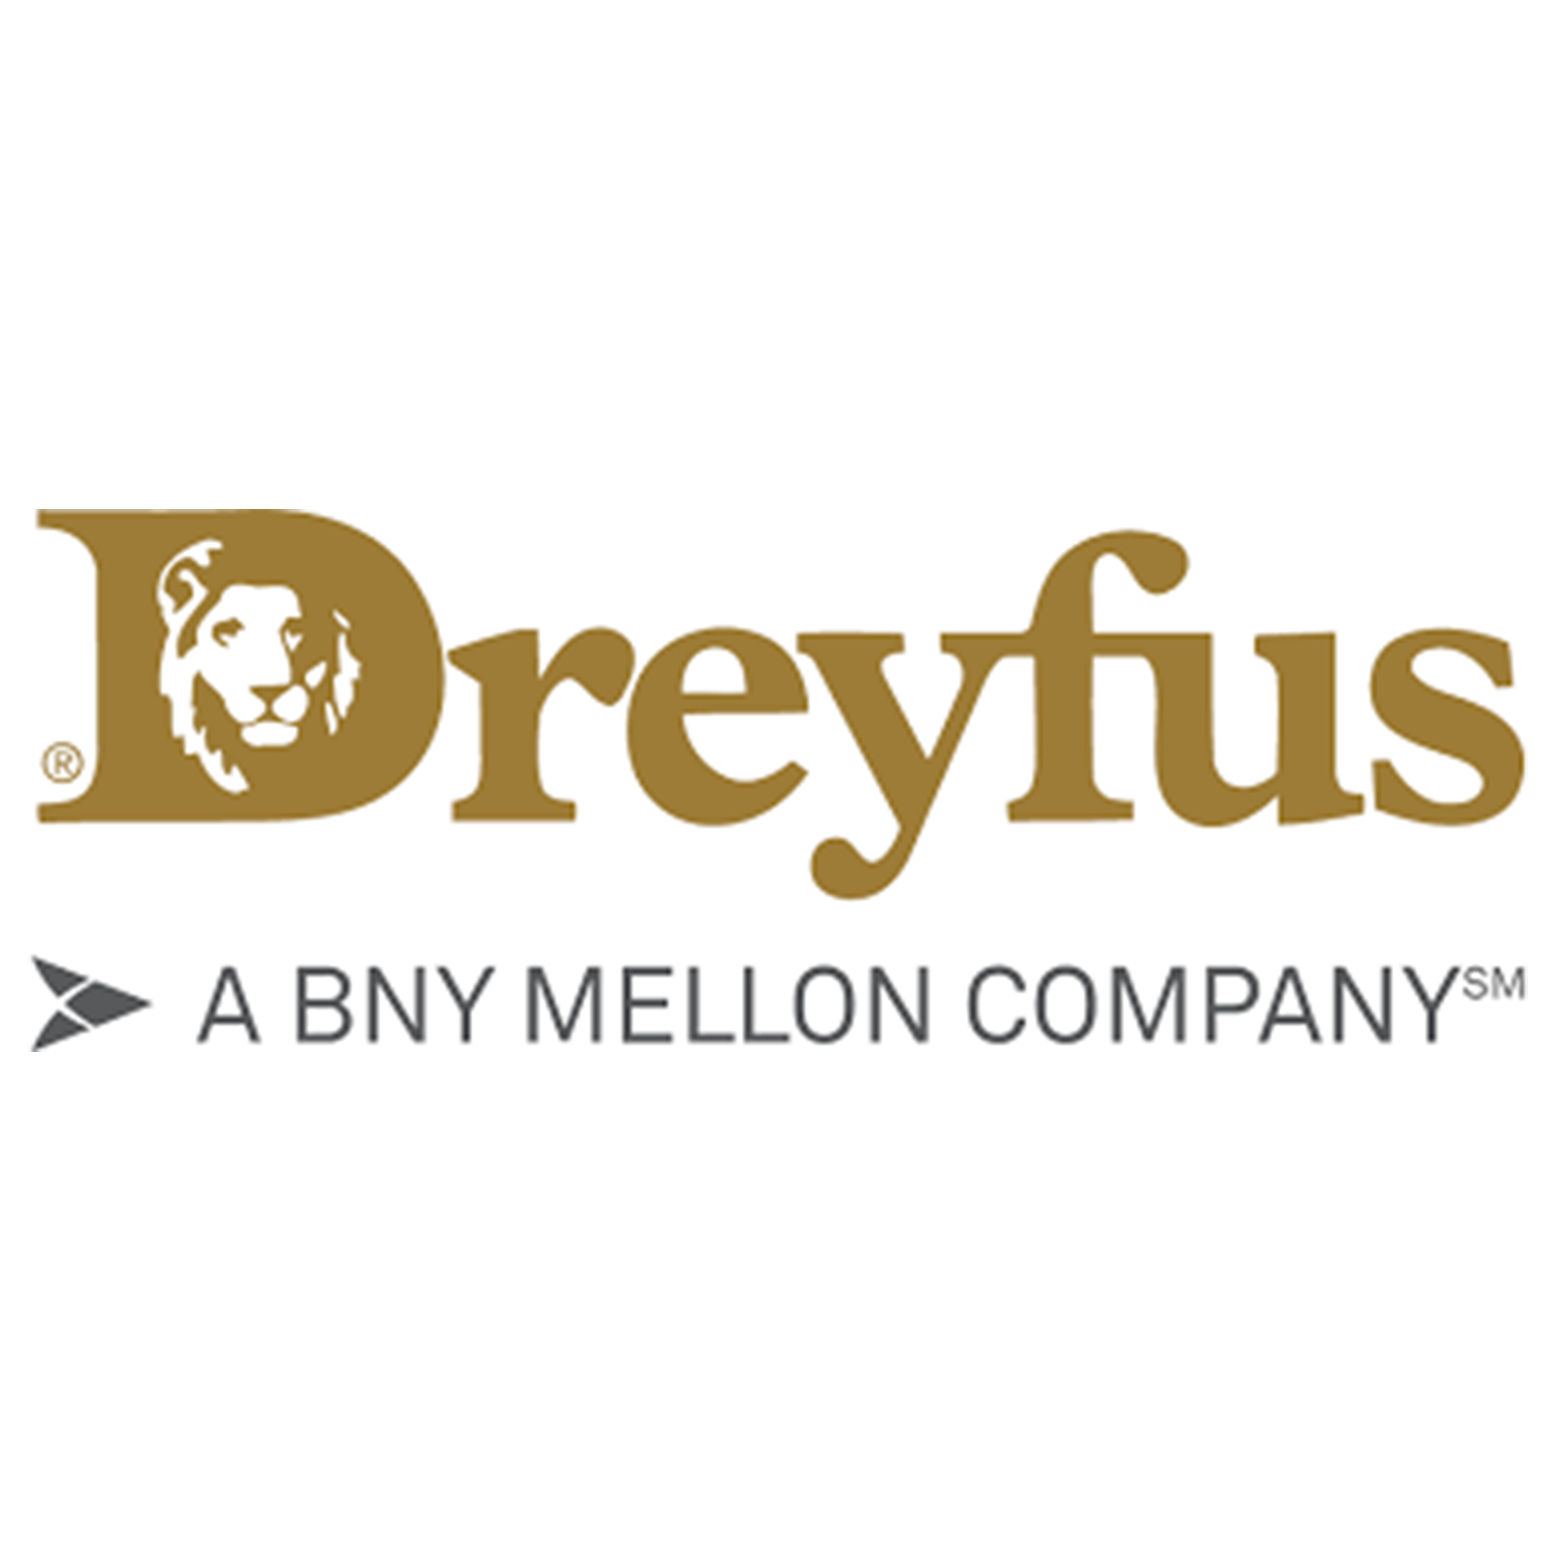 Dreyfus Corporation